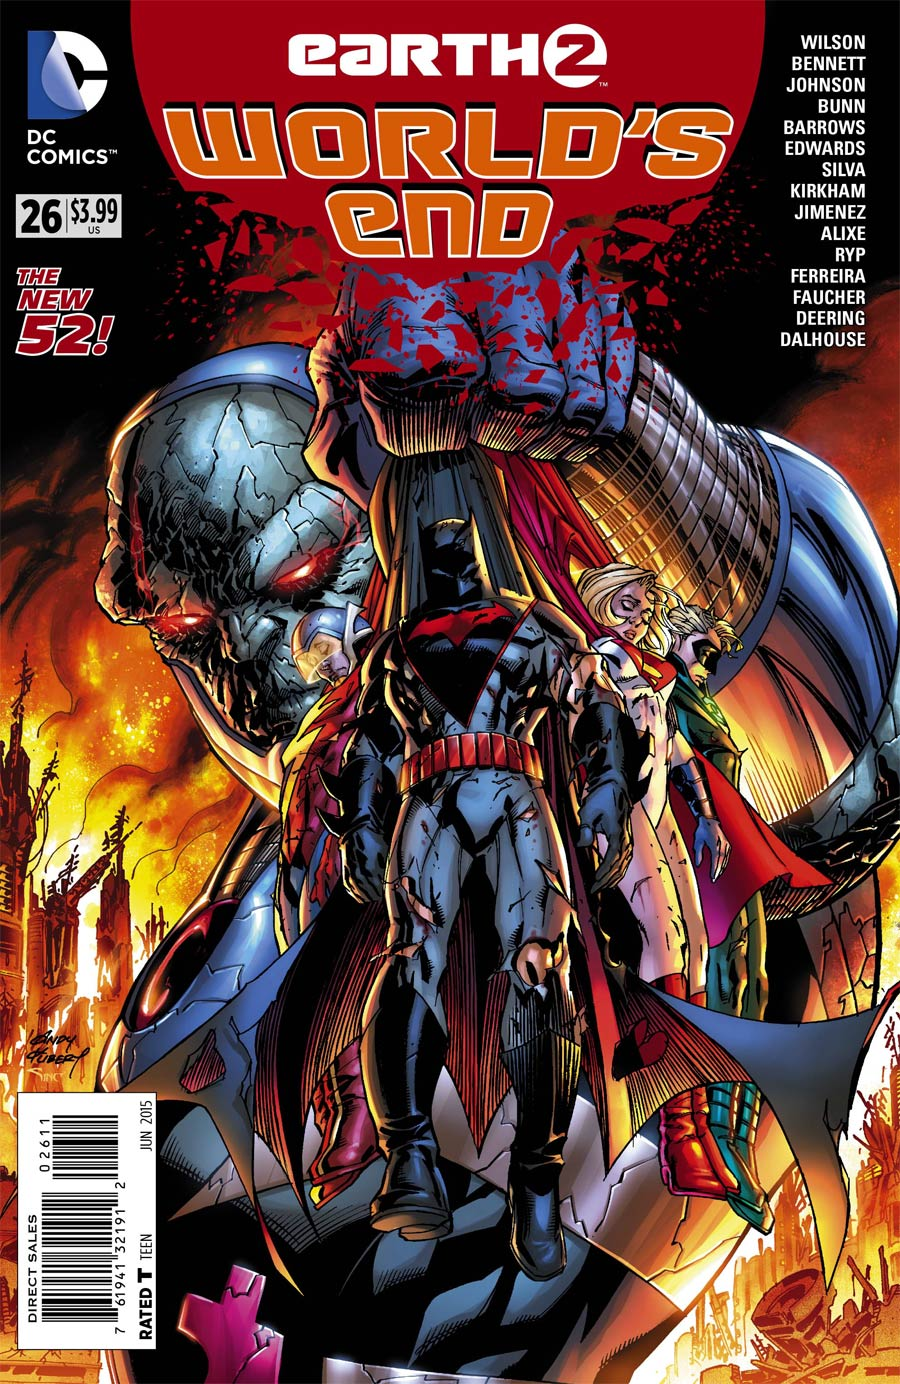 Earth 2 Worlds End #26 Cover A Regular Andy Kubert Cover